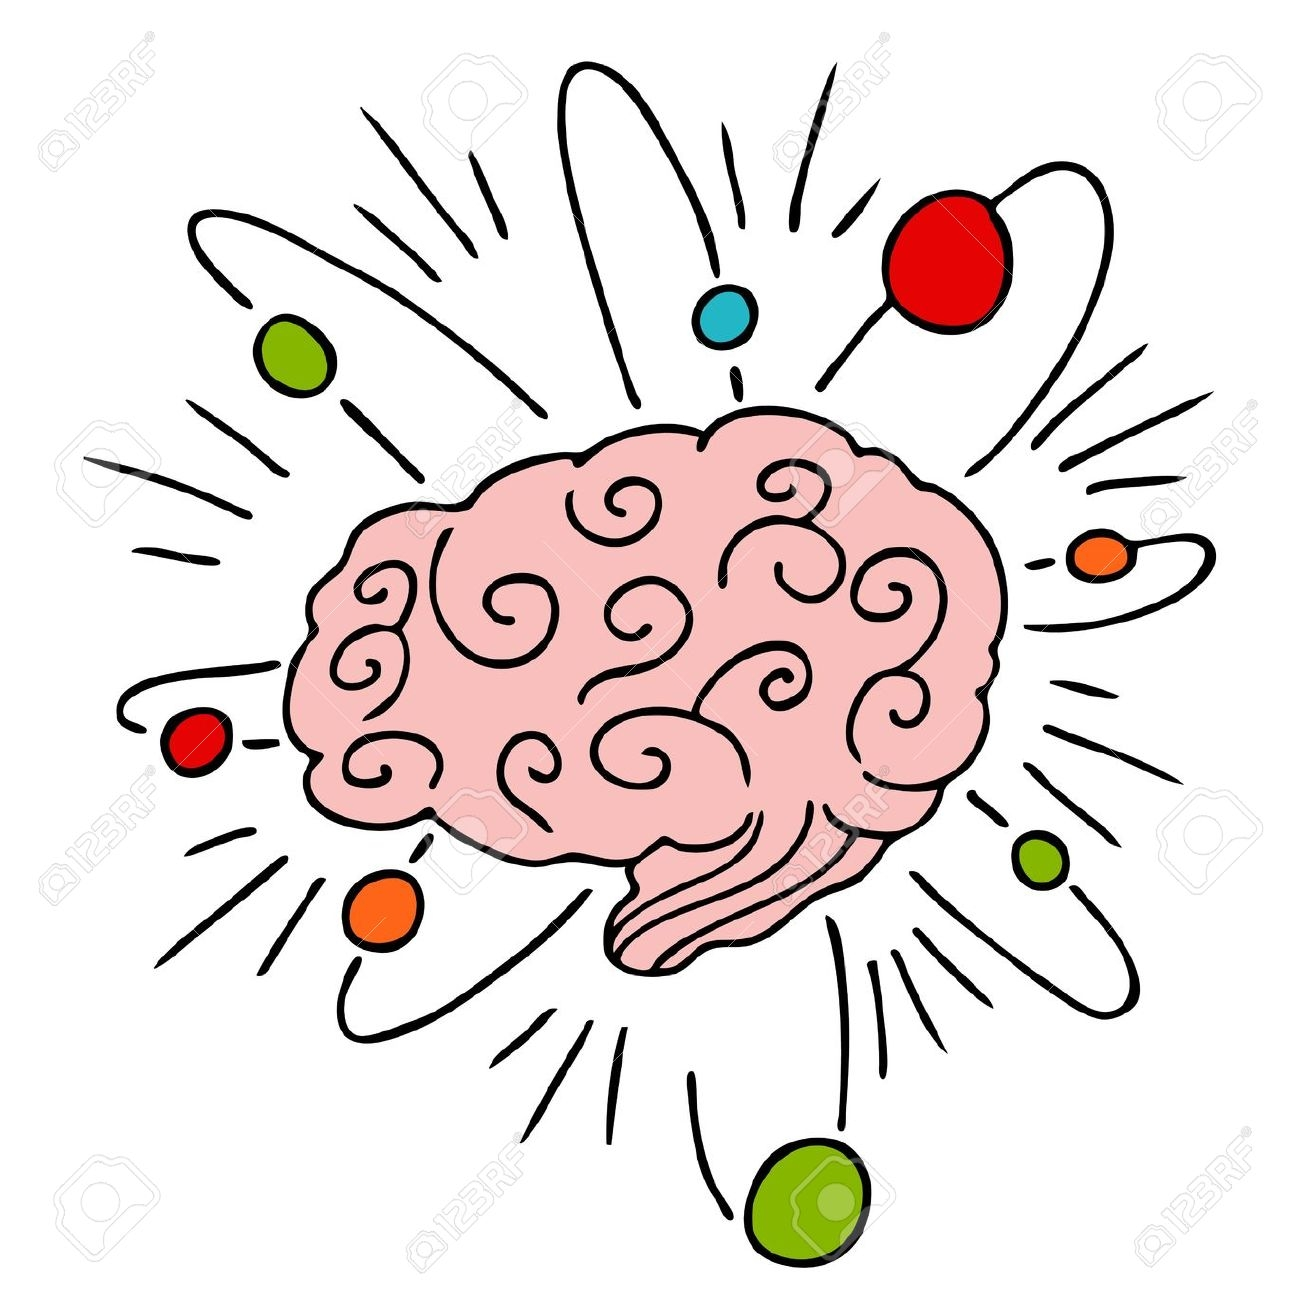 Brain clipart thinking. For kids station